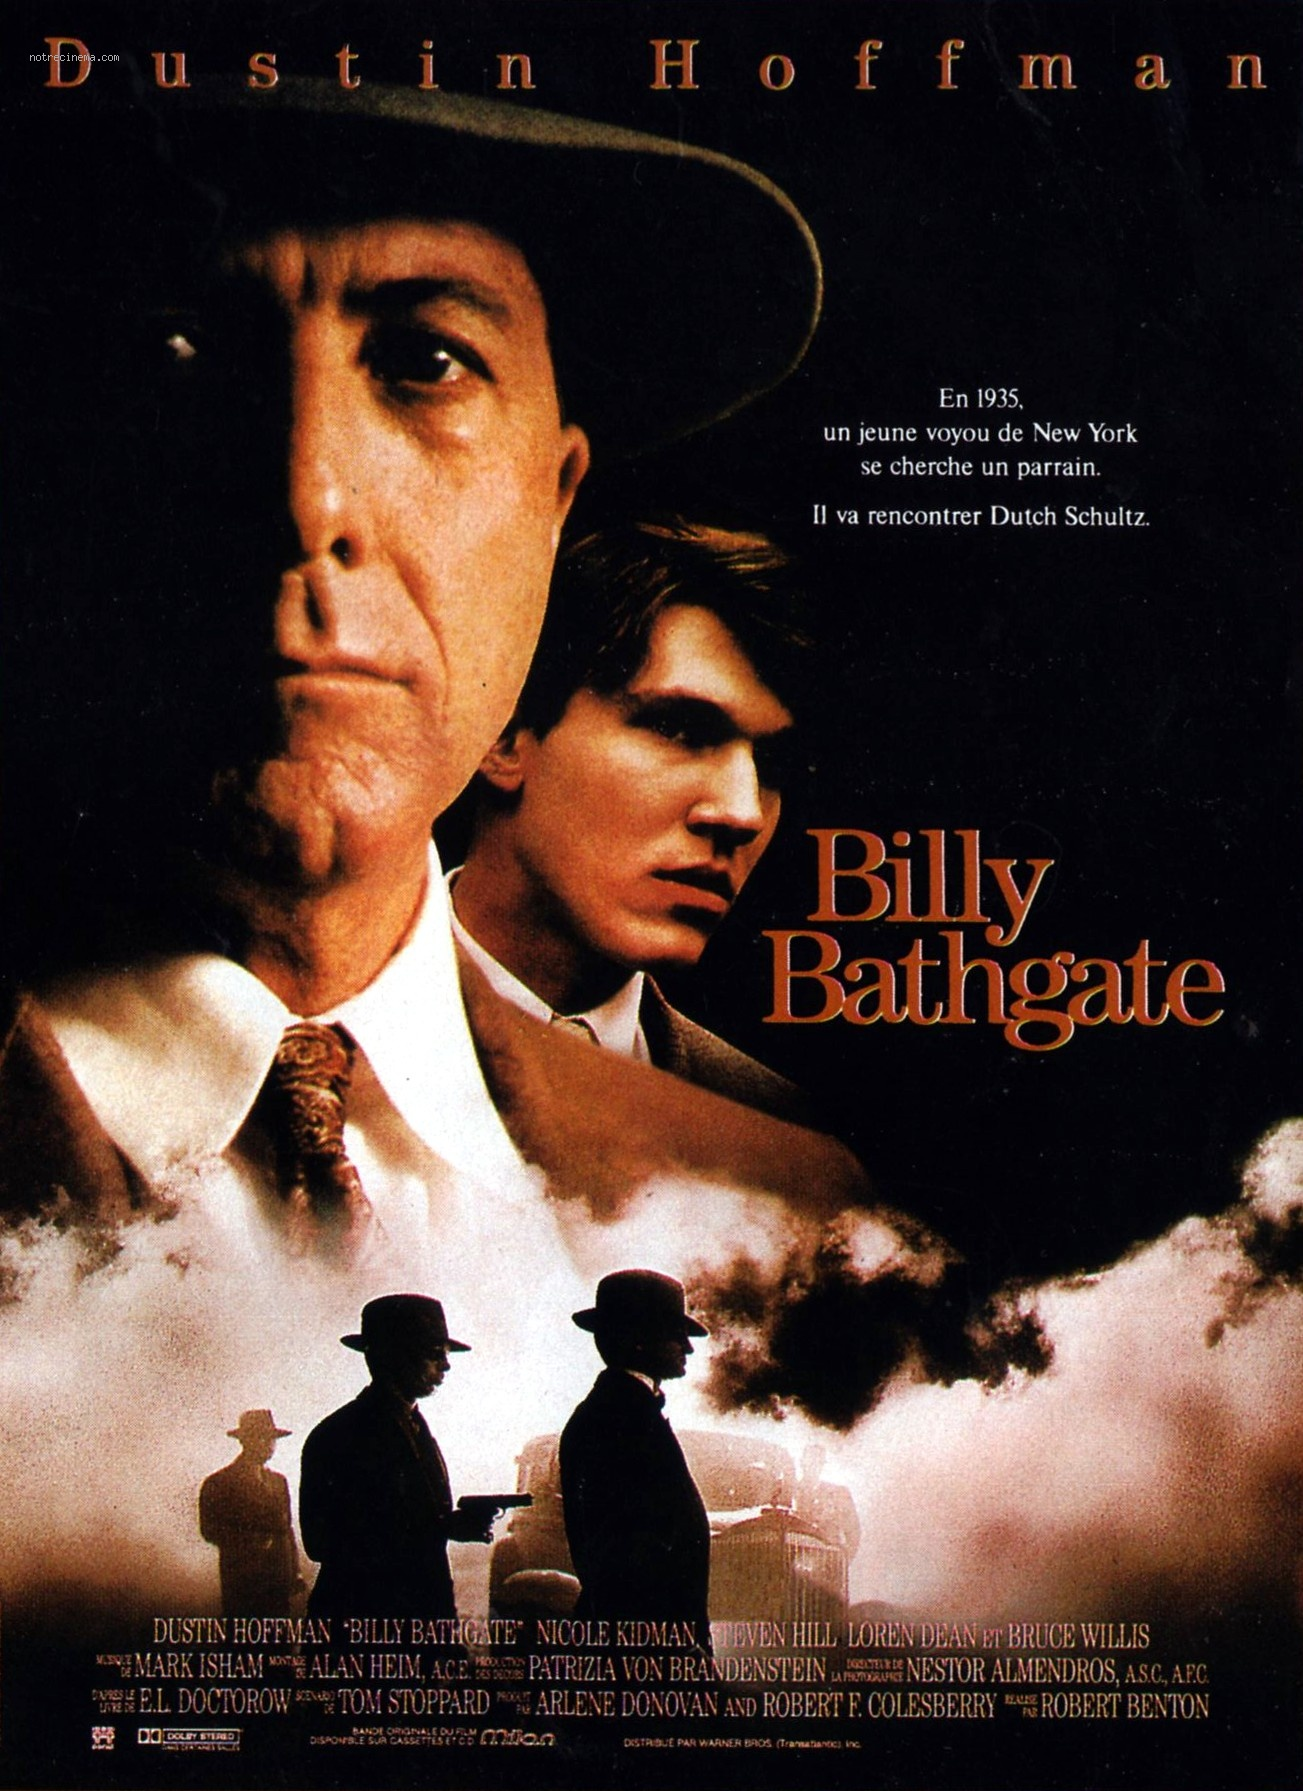 billy bathgate Disney touchstone affiche poster